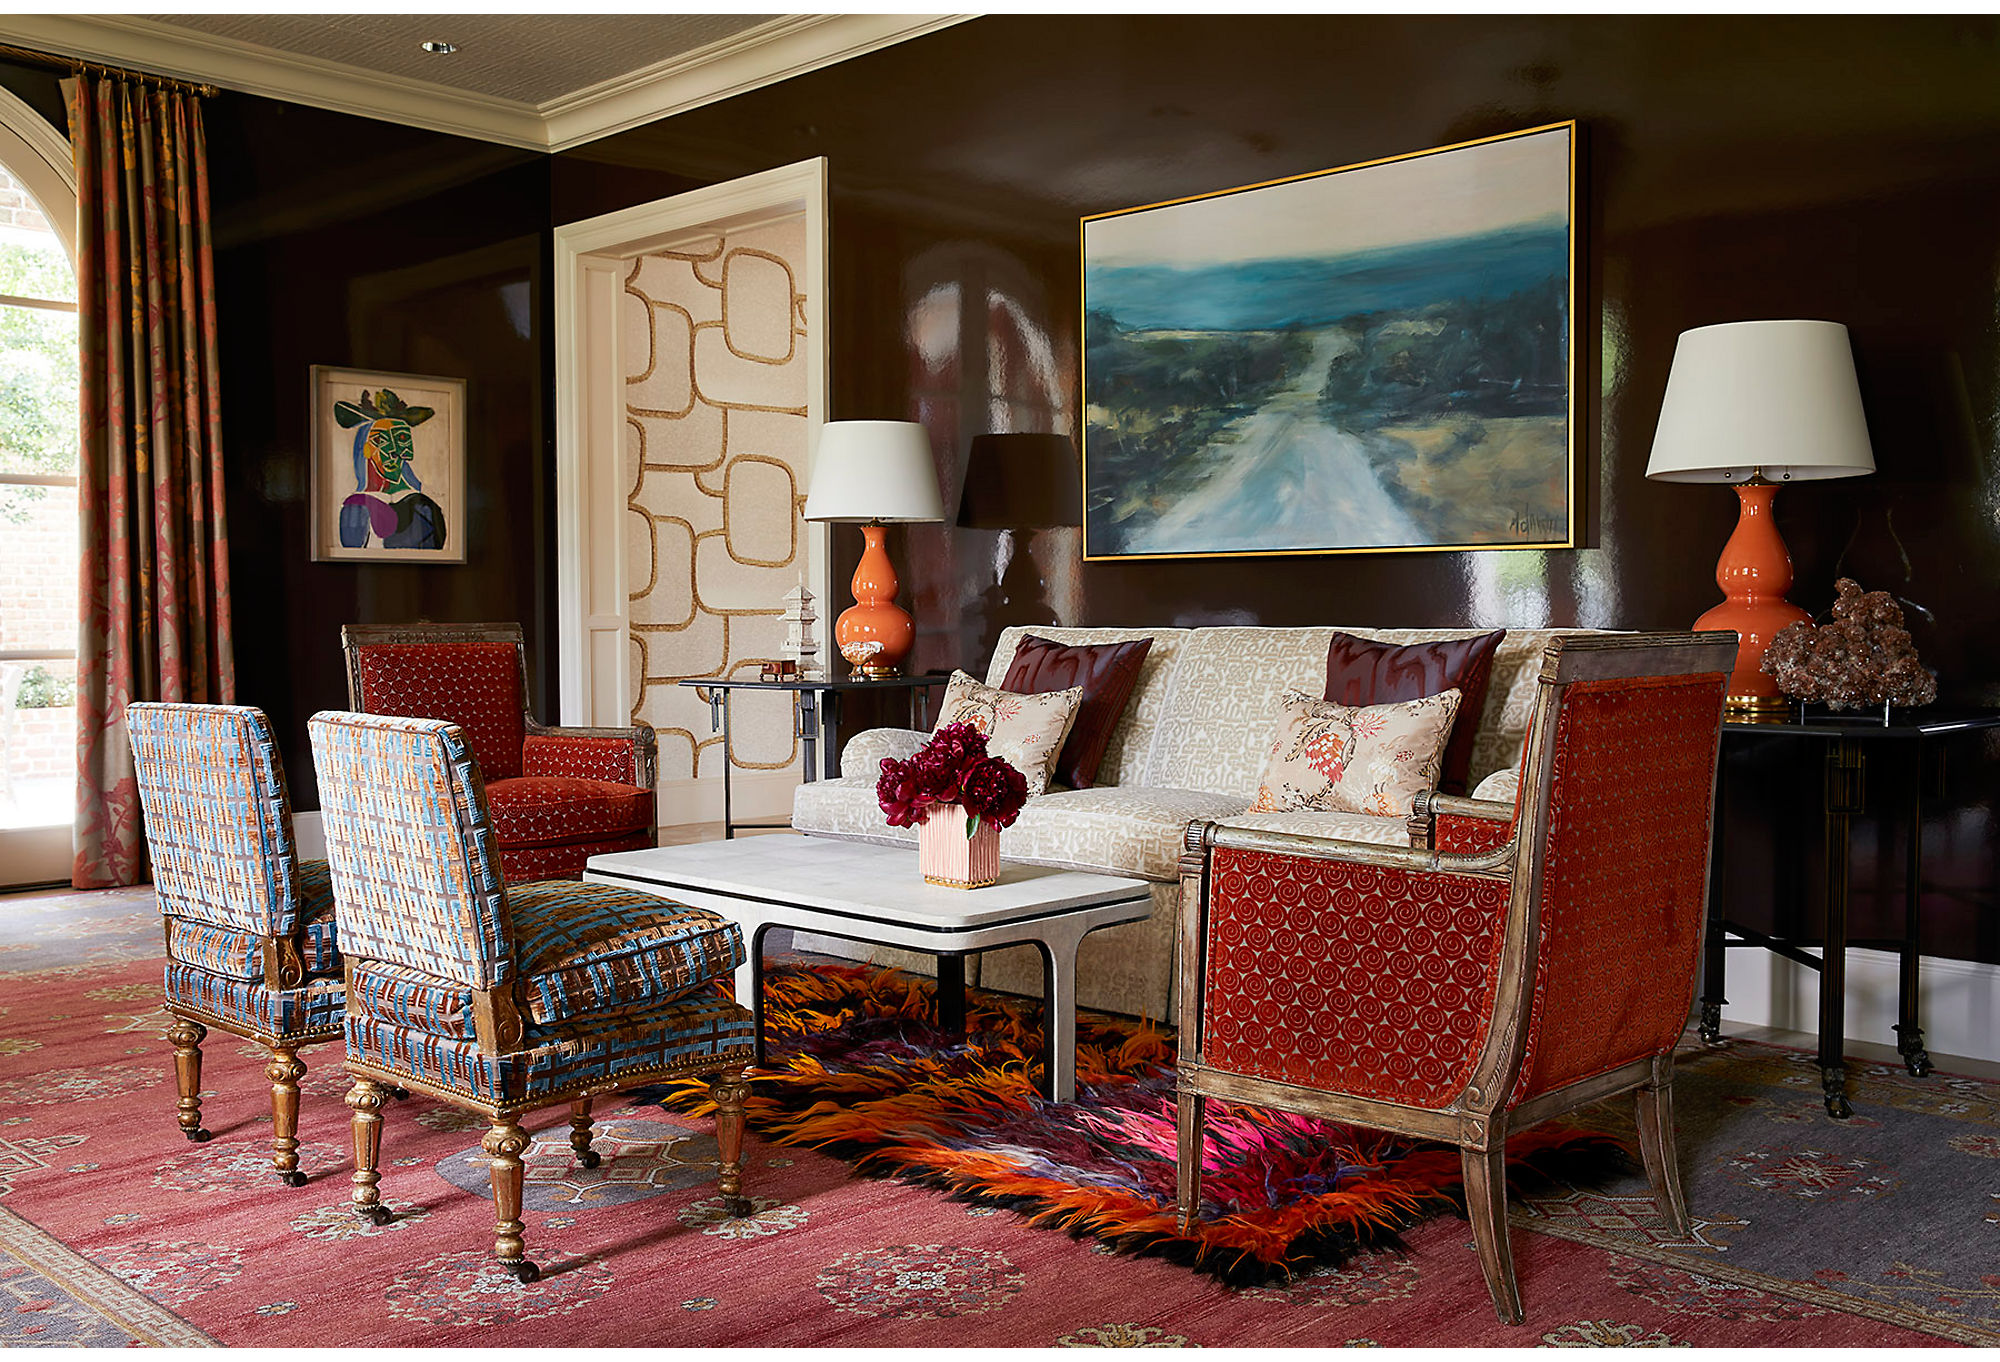 Dennis's choice to mix eras and styles keeps the room interesting at every turn. Layering a wild shag carpet over an Oriental rug exemplifies his maximalist nature.